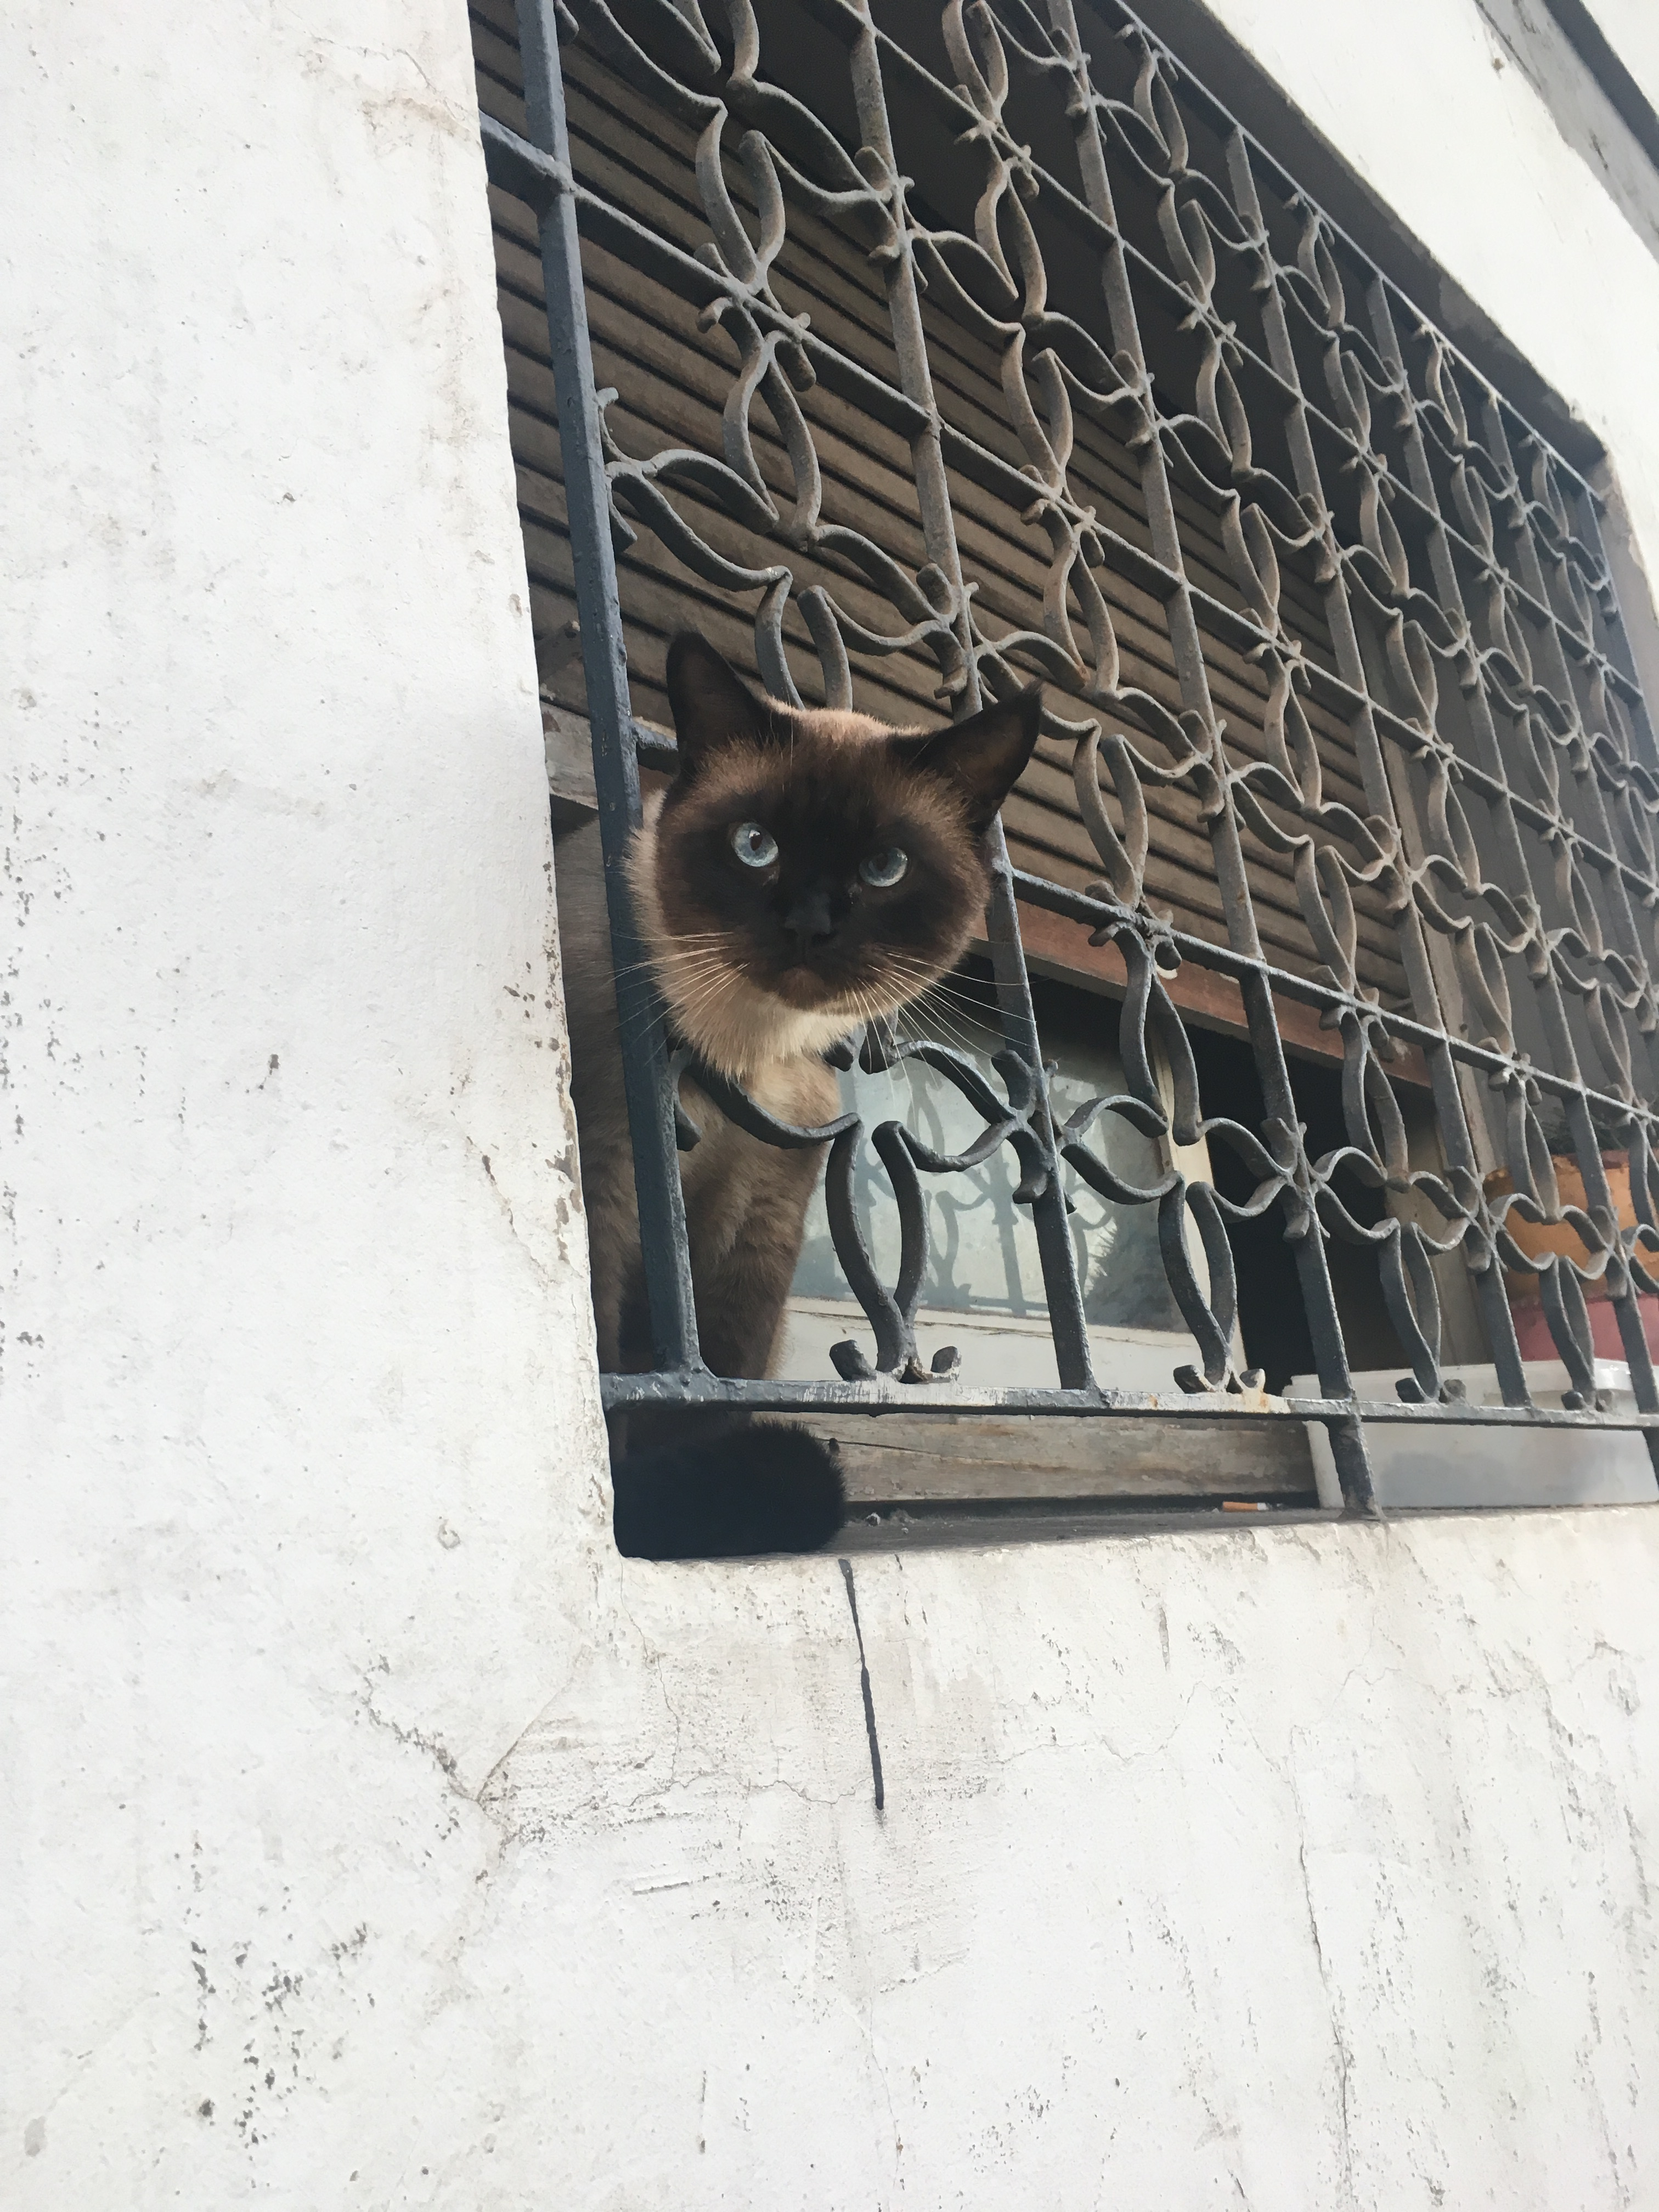 A Siamese cat looks out of a window